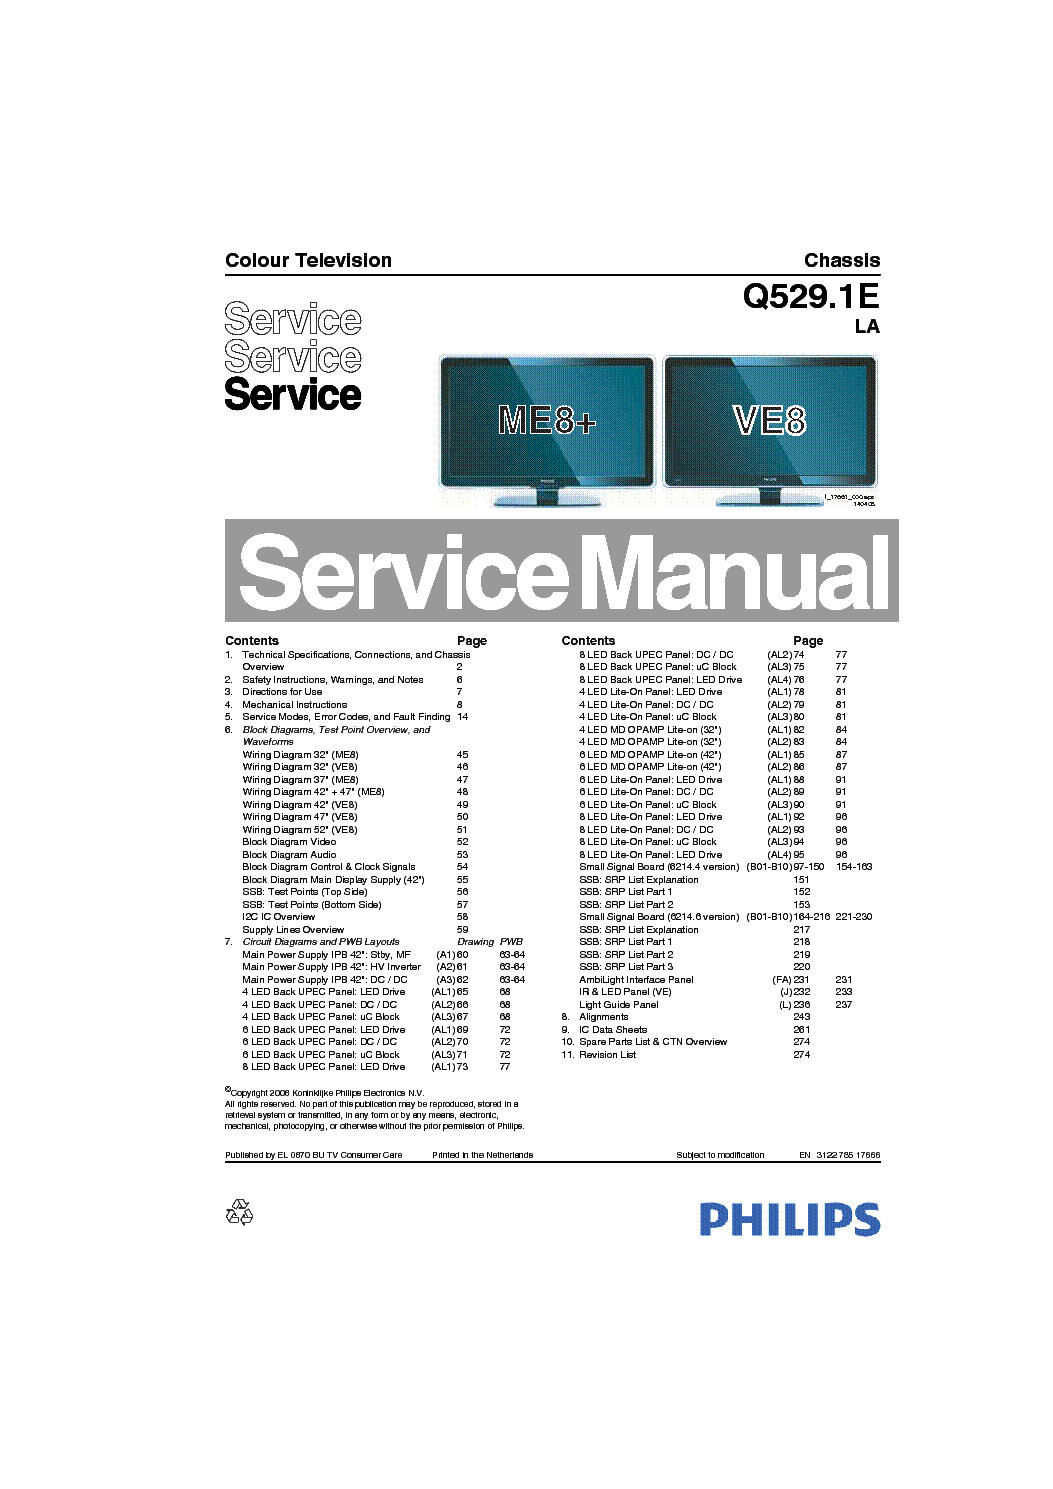 PHILIPS Q529.1ELA 312278517666 service manual (1st page)